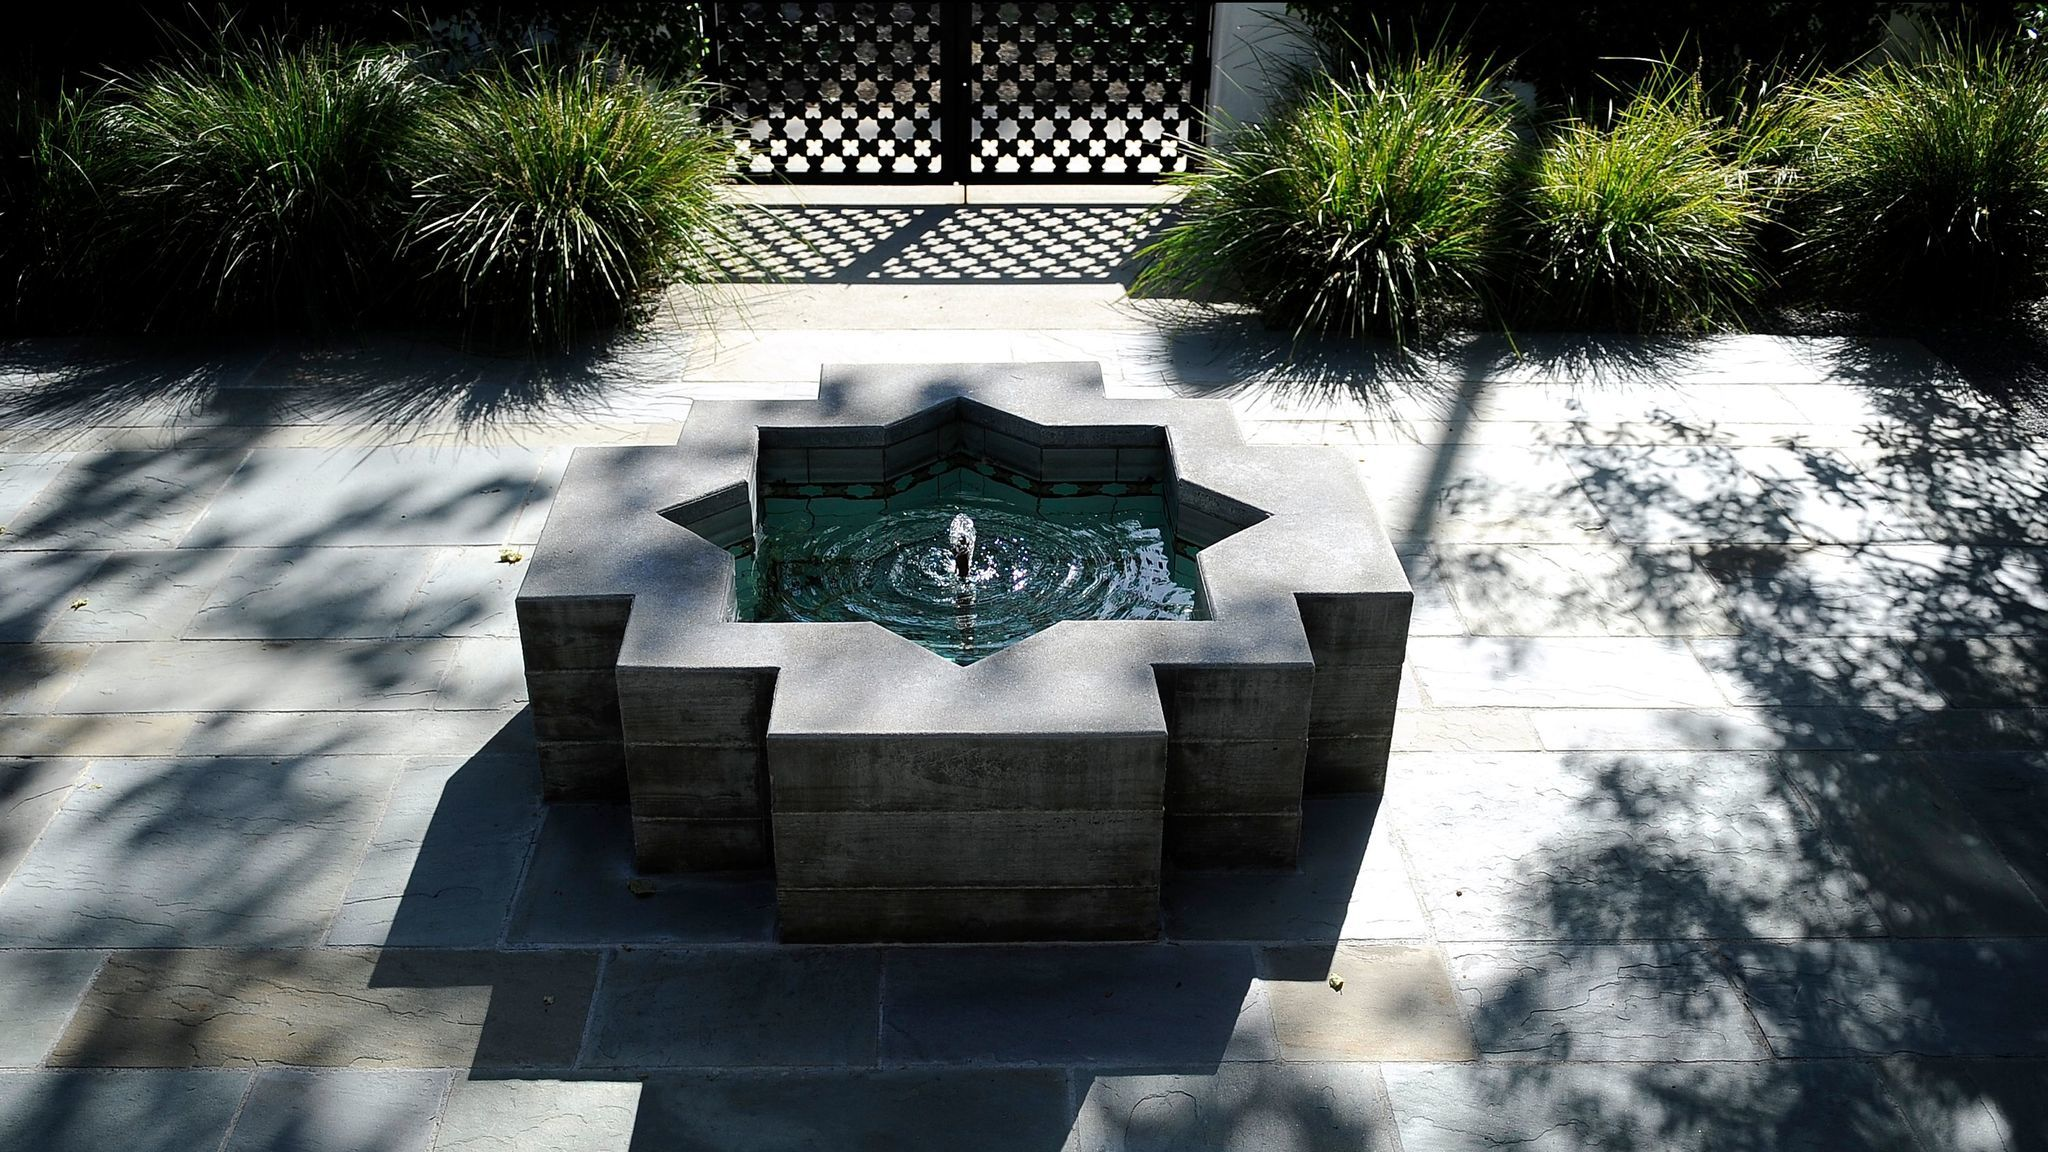 A Moroccan-inspired water fountain adds character to the small courtyard in front.